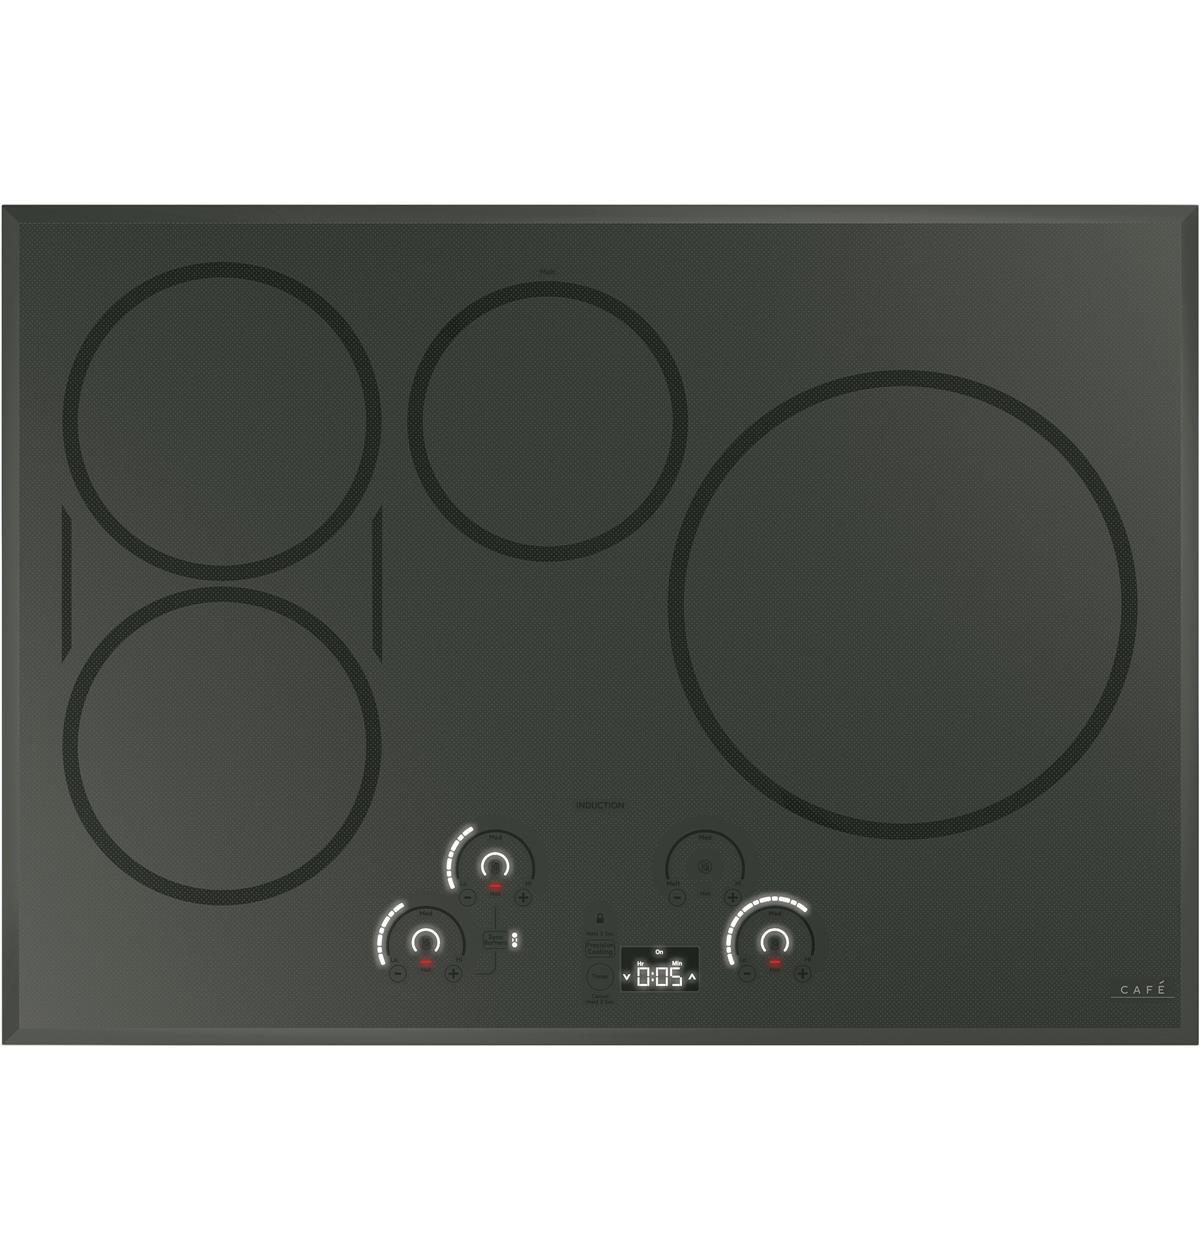 "Café™ 30"" Smart Touch-Control Induction Cooktop"